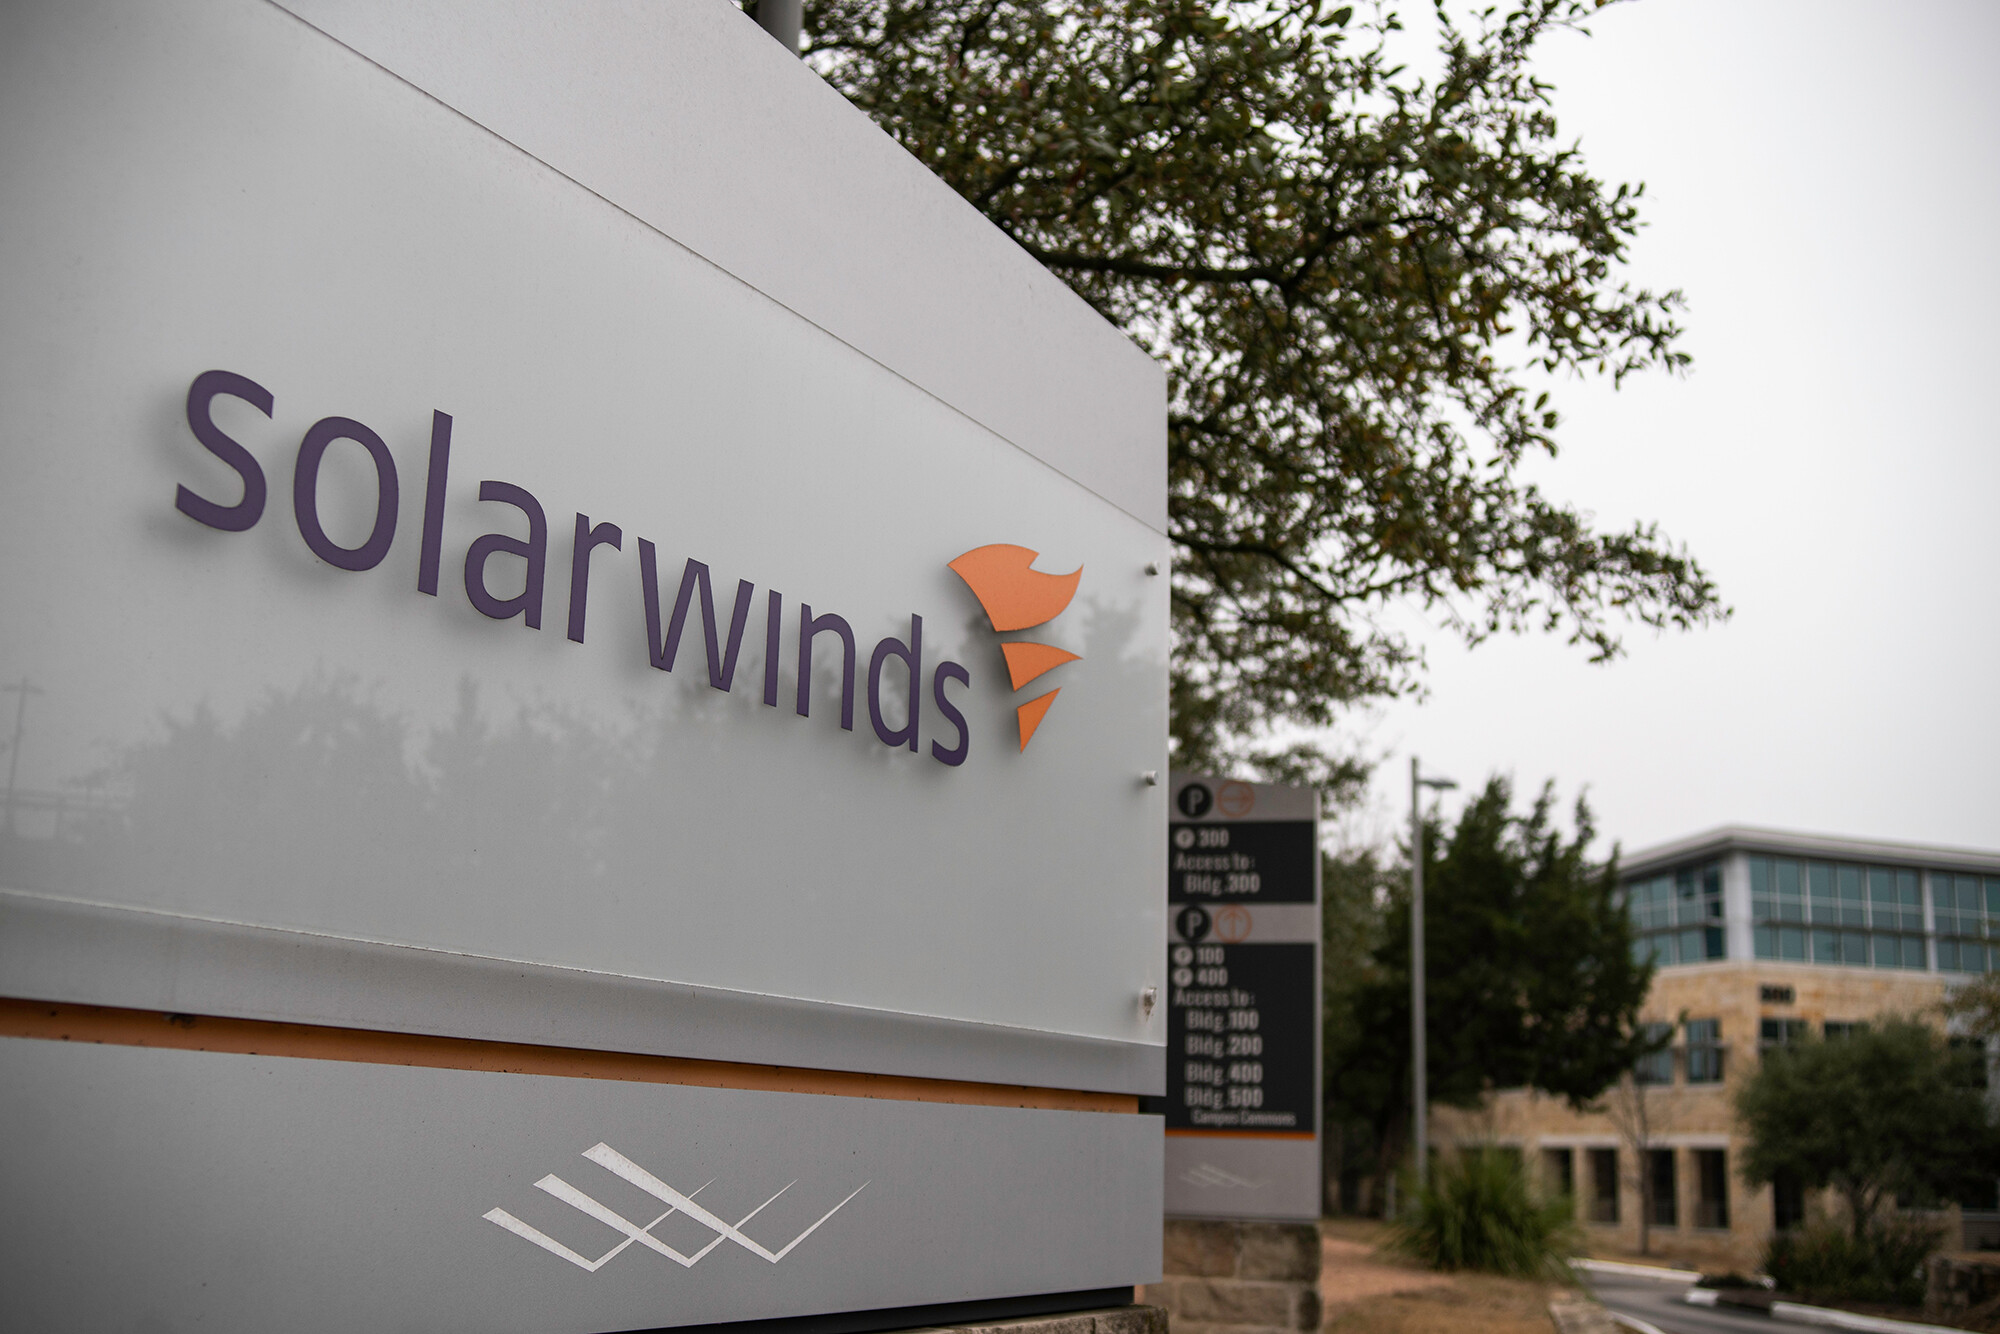 Russian hackers behind SolarWinds hack are trying to infiltrate US and European government networks